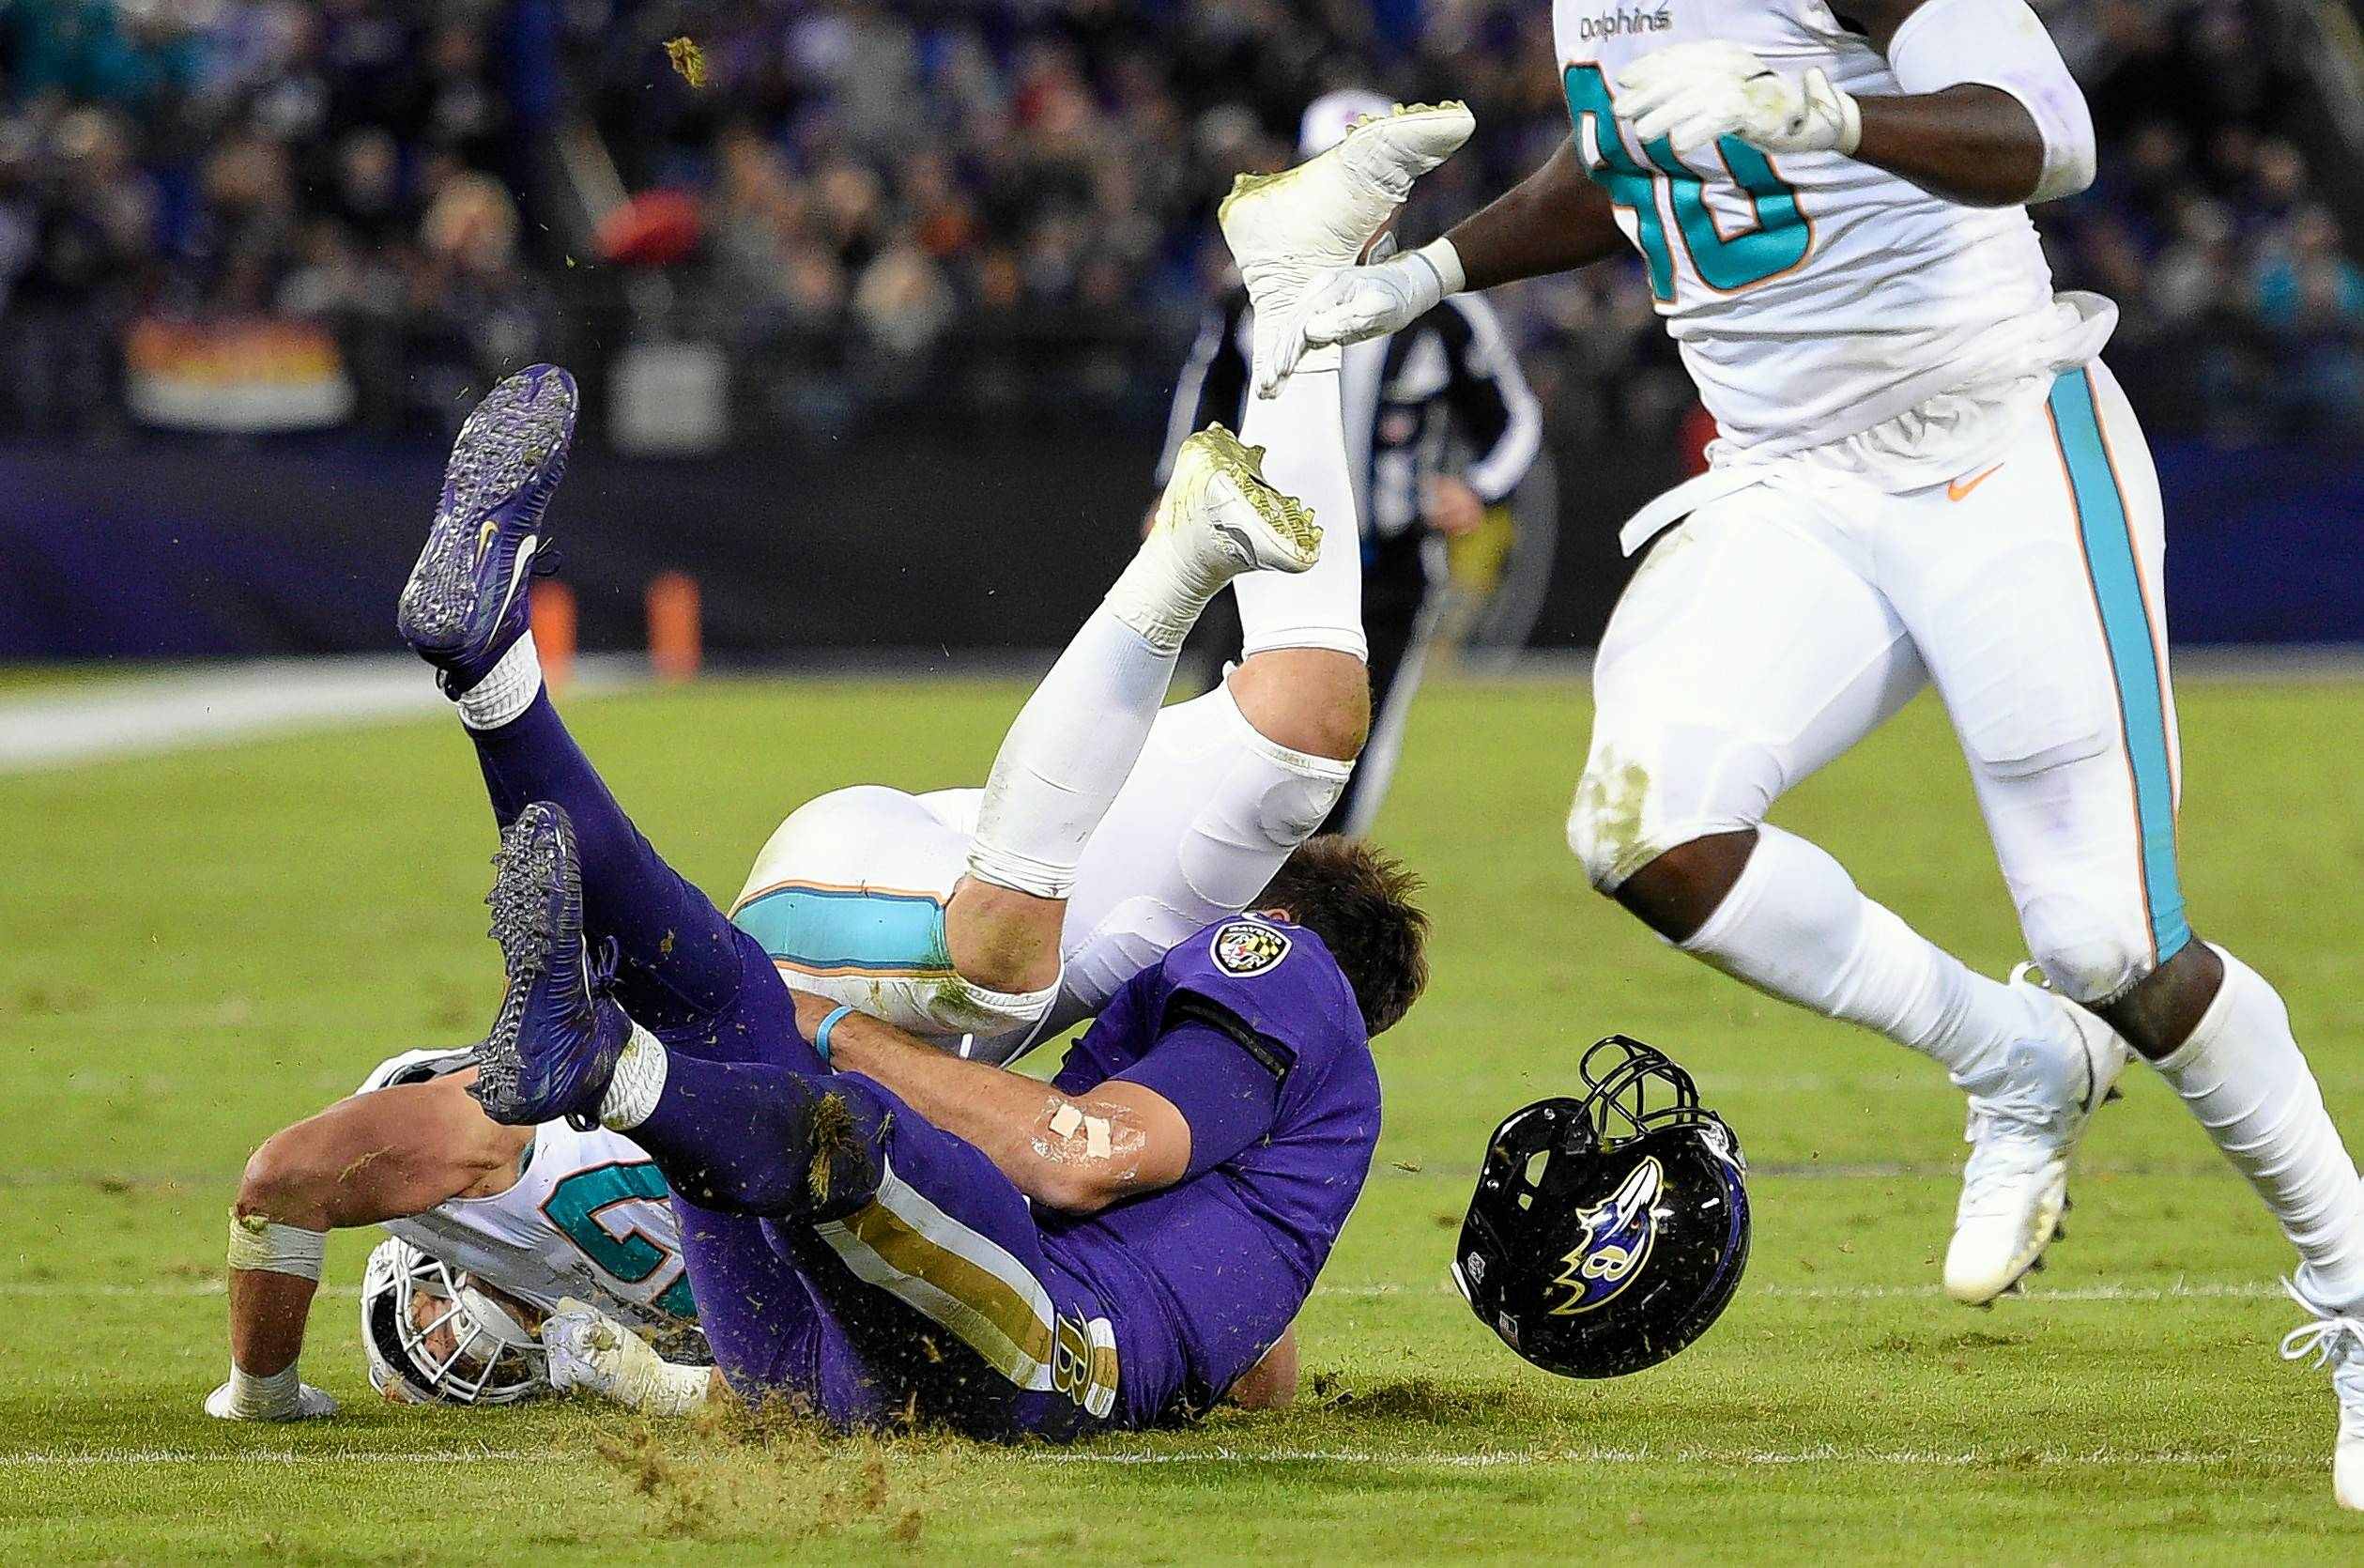 Miami Dolphins middle linebacker Kiko Alonso, top left, colliding with Baltimore Ravens quarterback Joe Flacco in the first half in Baltimore. Flacco missed the rest of the game, but cleared concussion protocol.